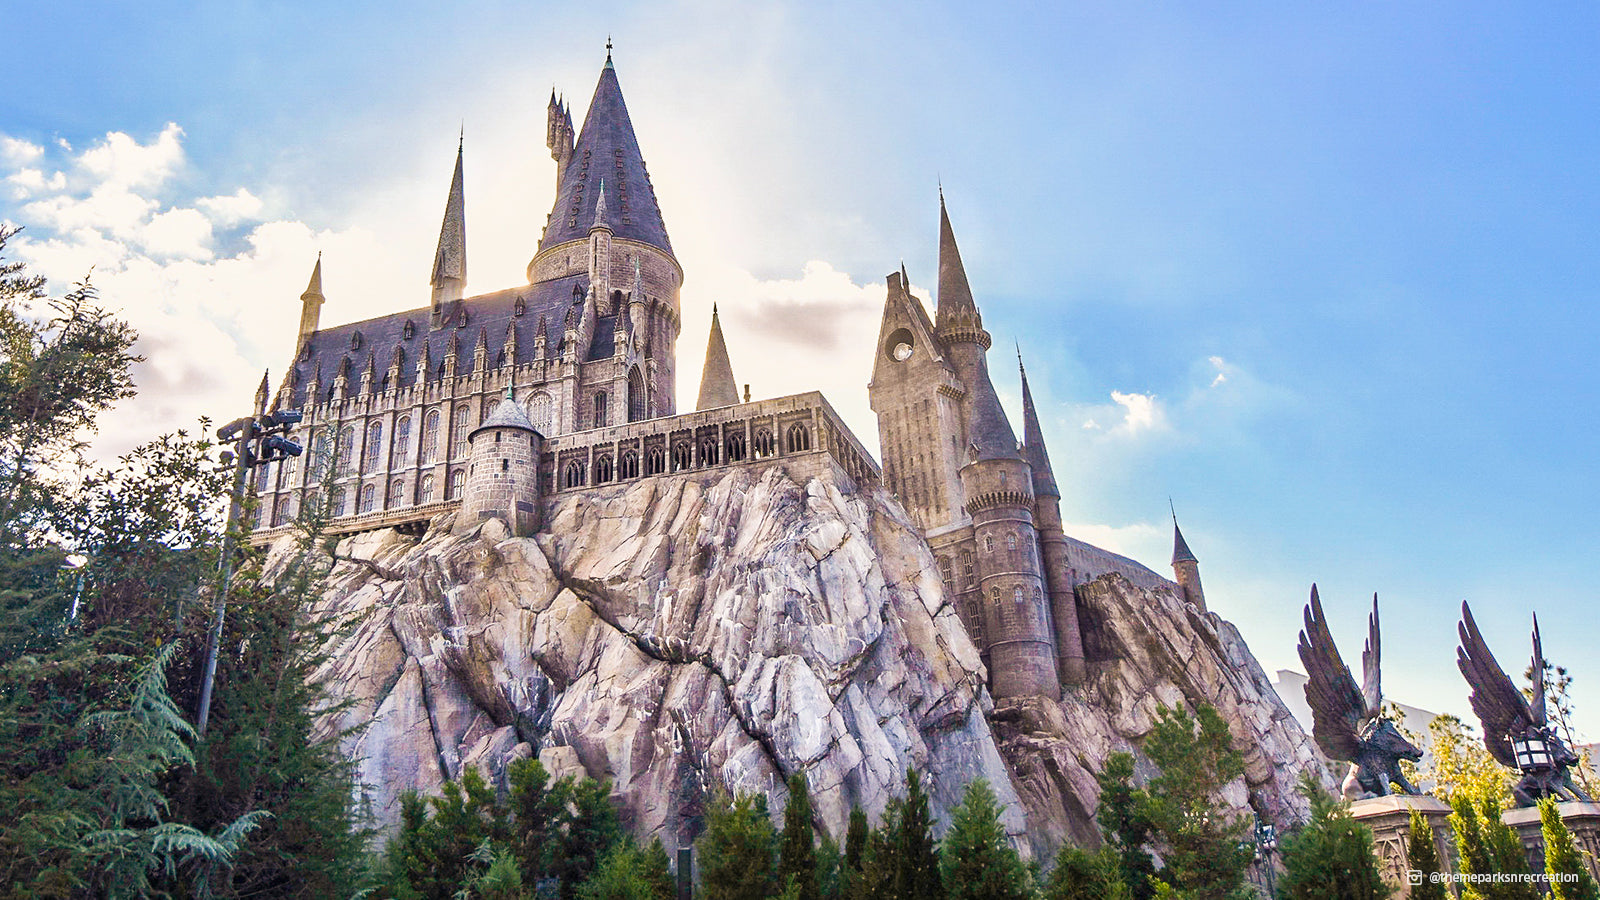 The castle in the wizarding world